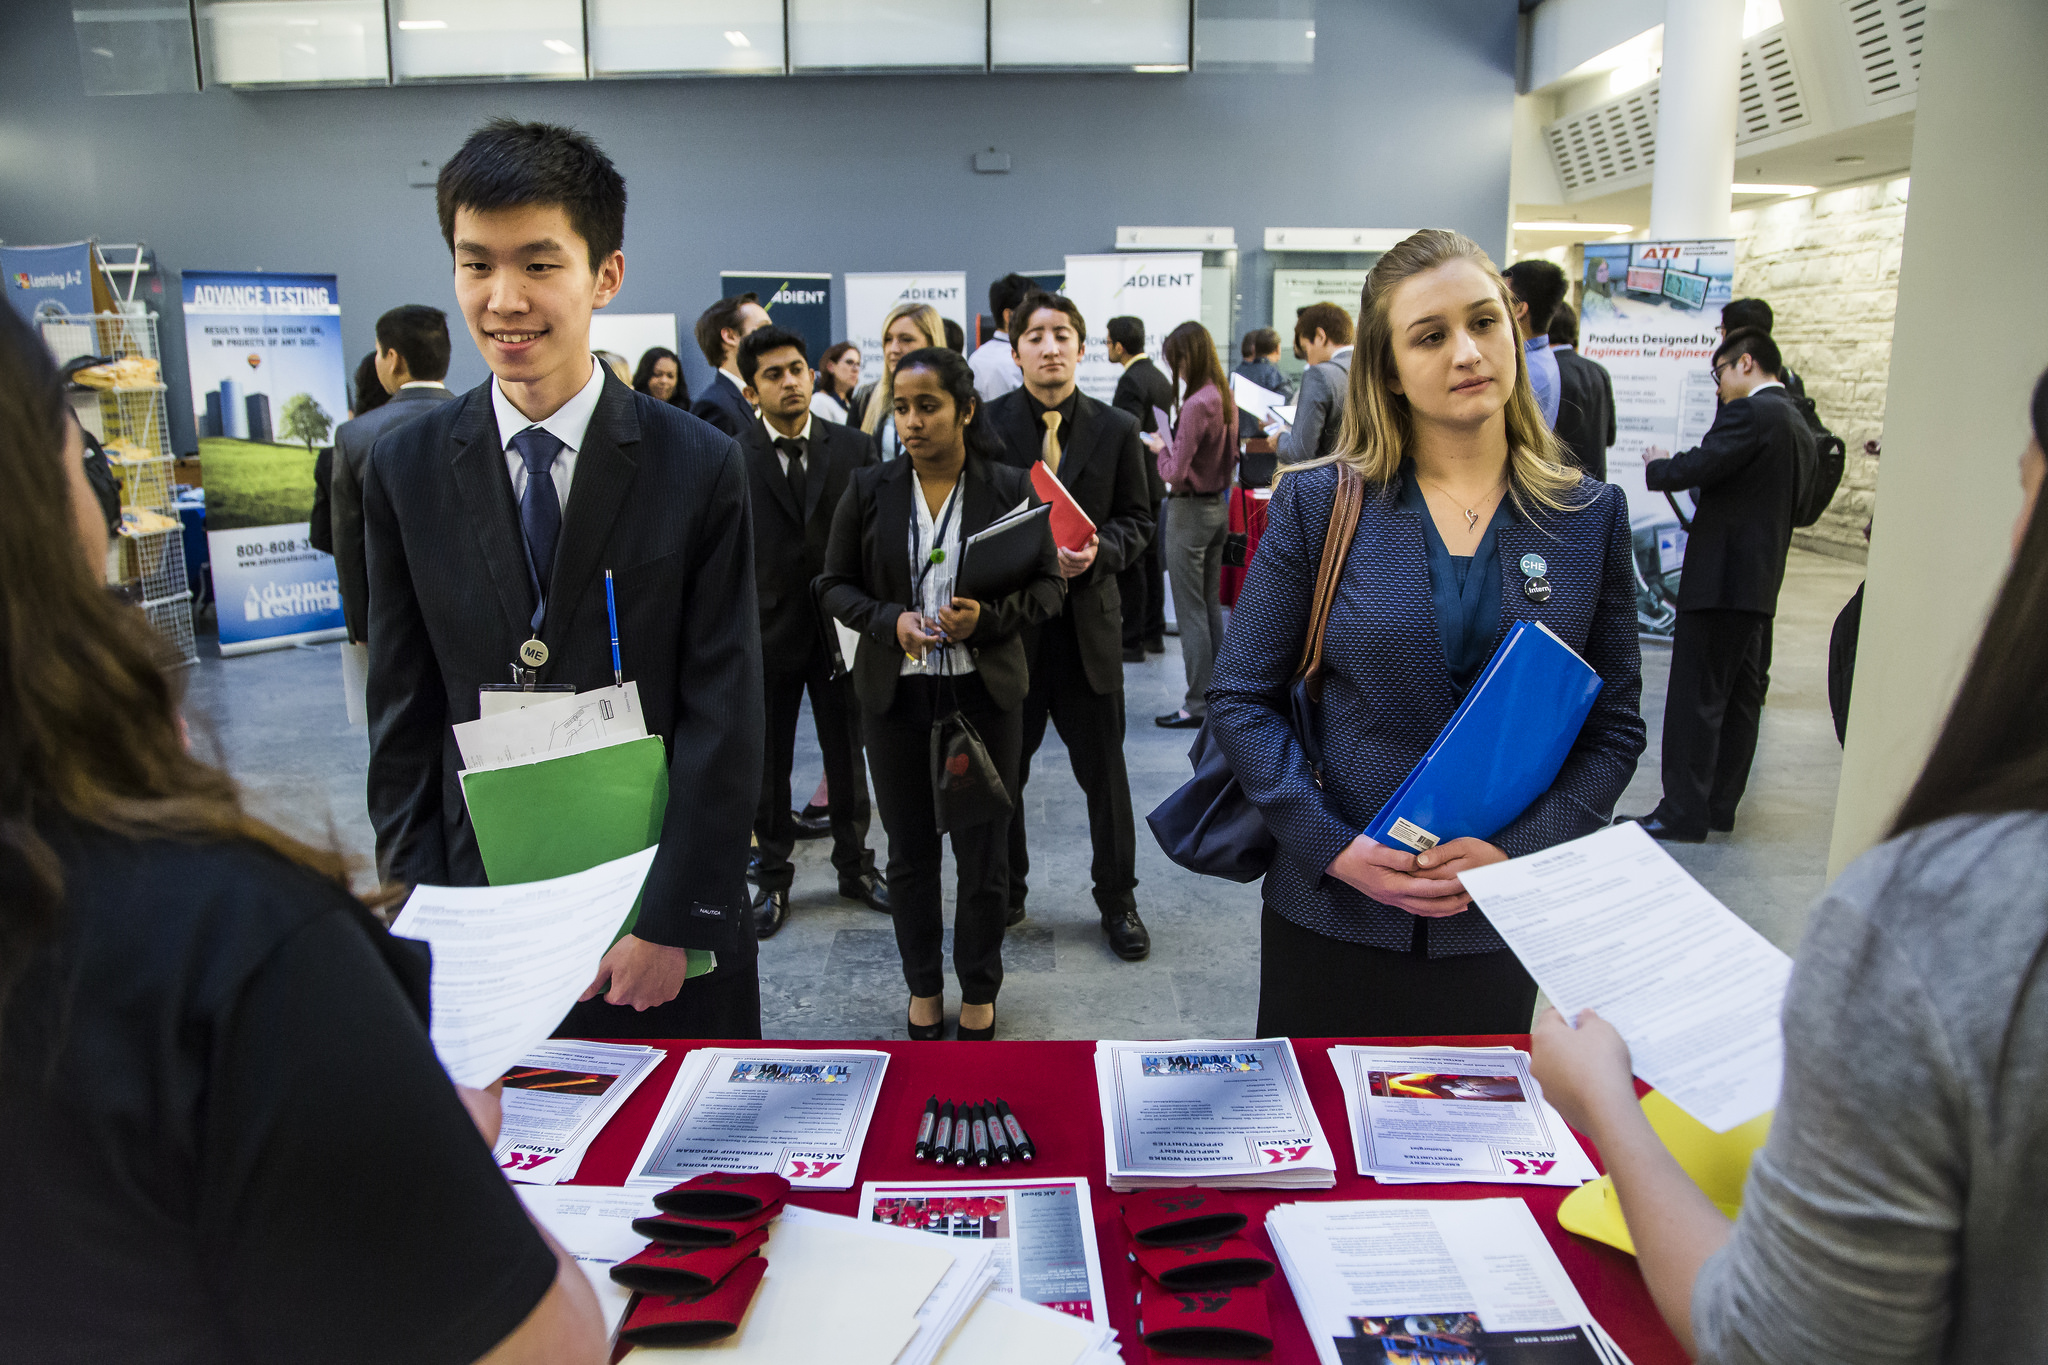 This is a picture of two students talking to employers and being handed information about their company.